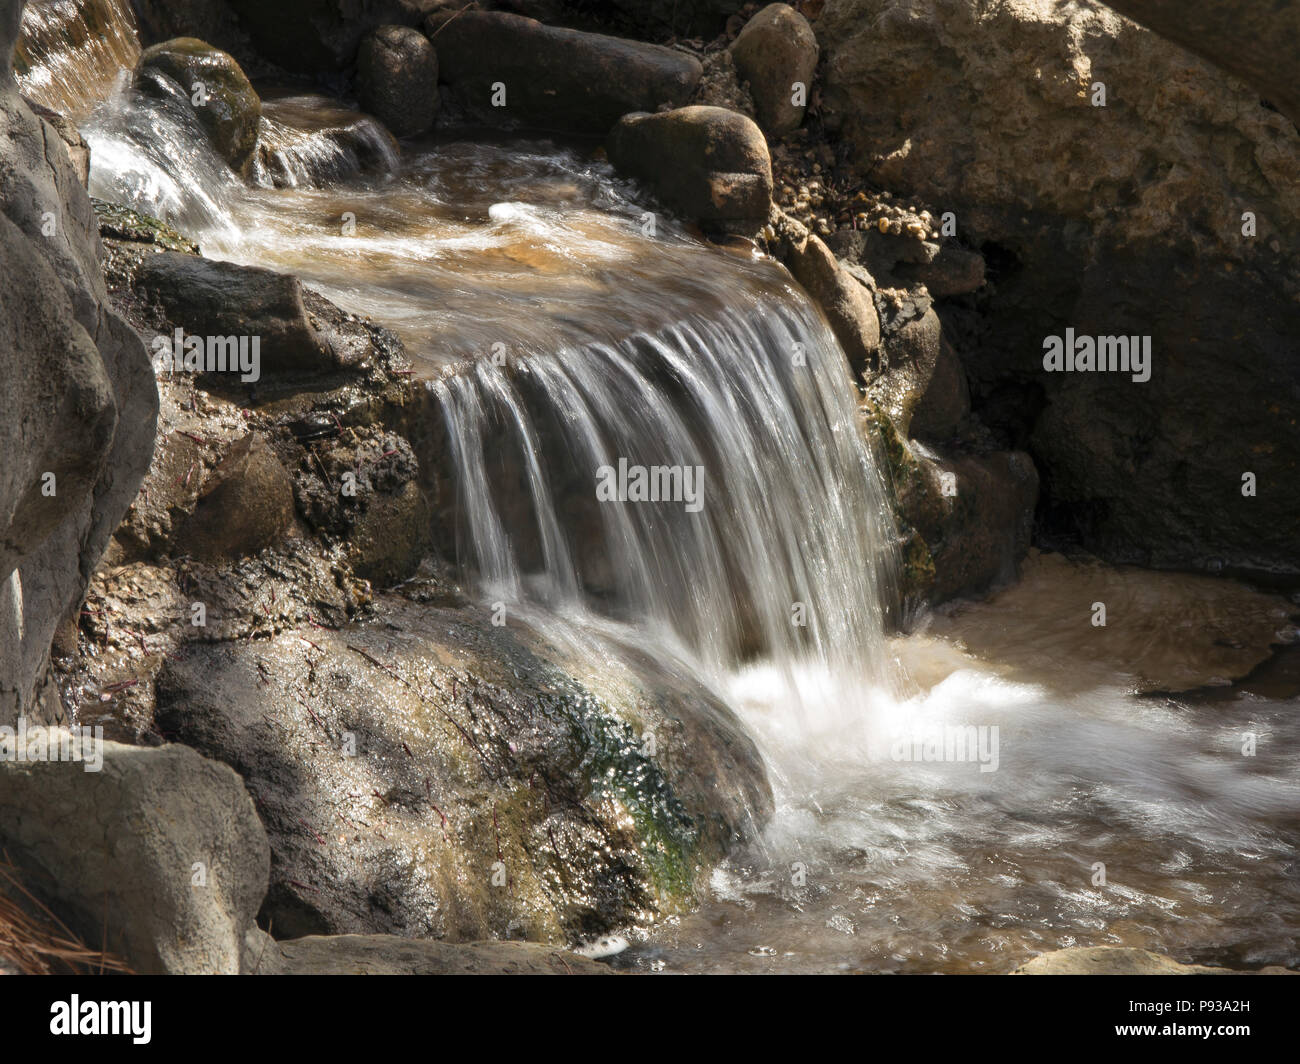 Water swiftly flows over a small waterfall inside the Birmingham Botanical Gardent - Stock Image